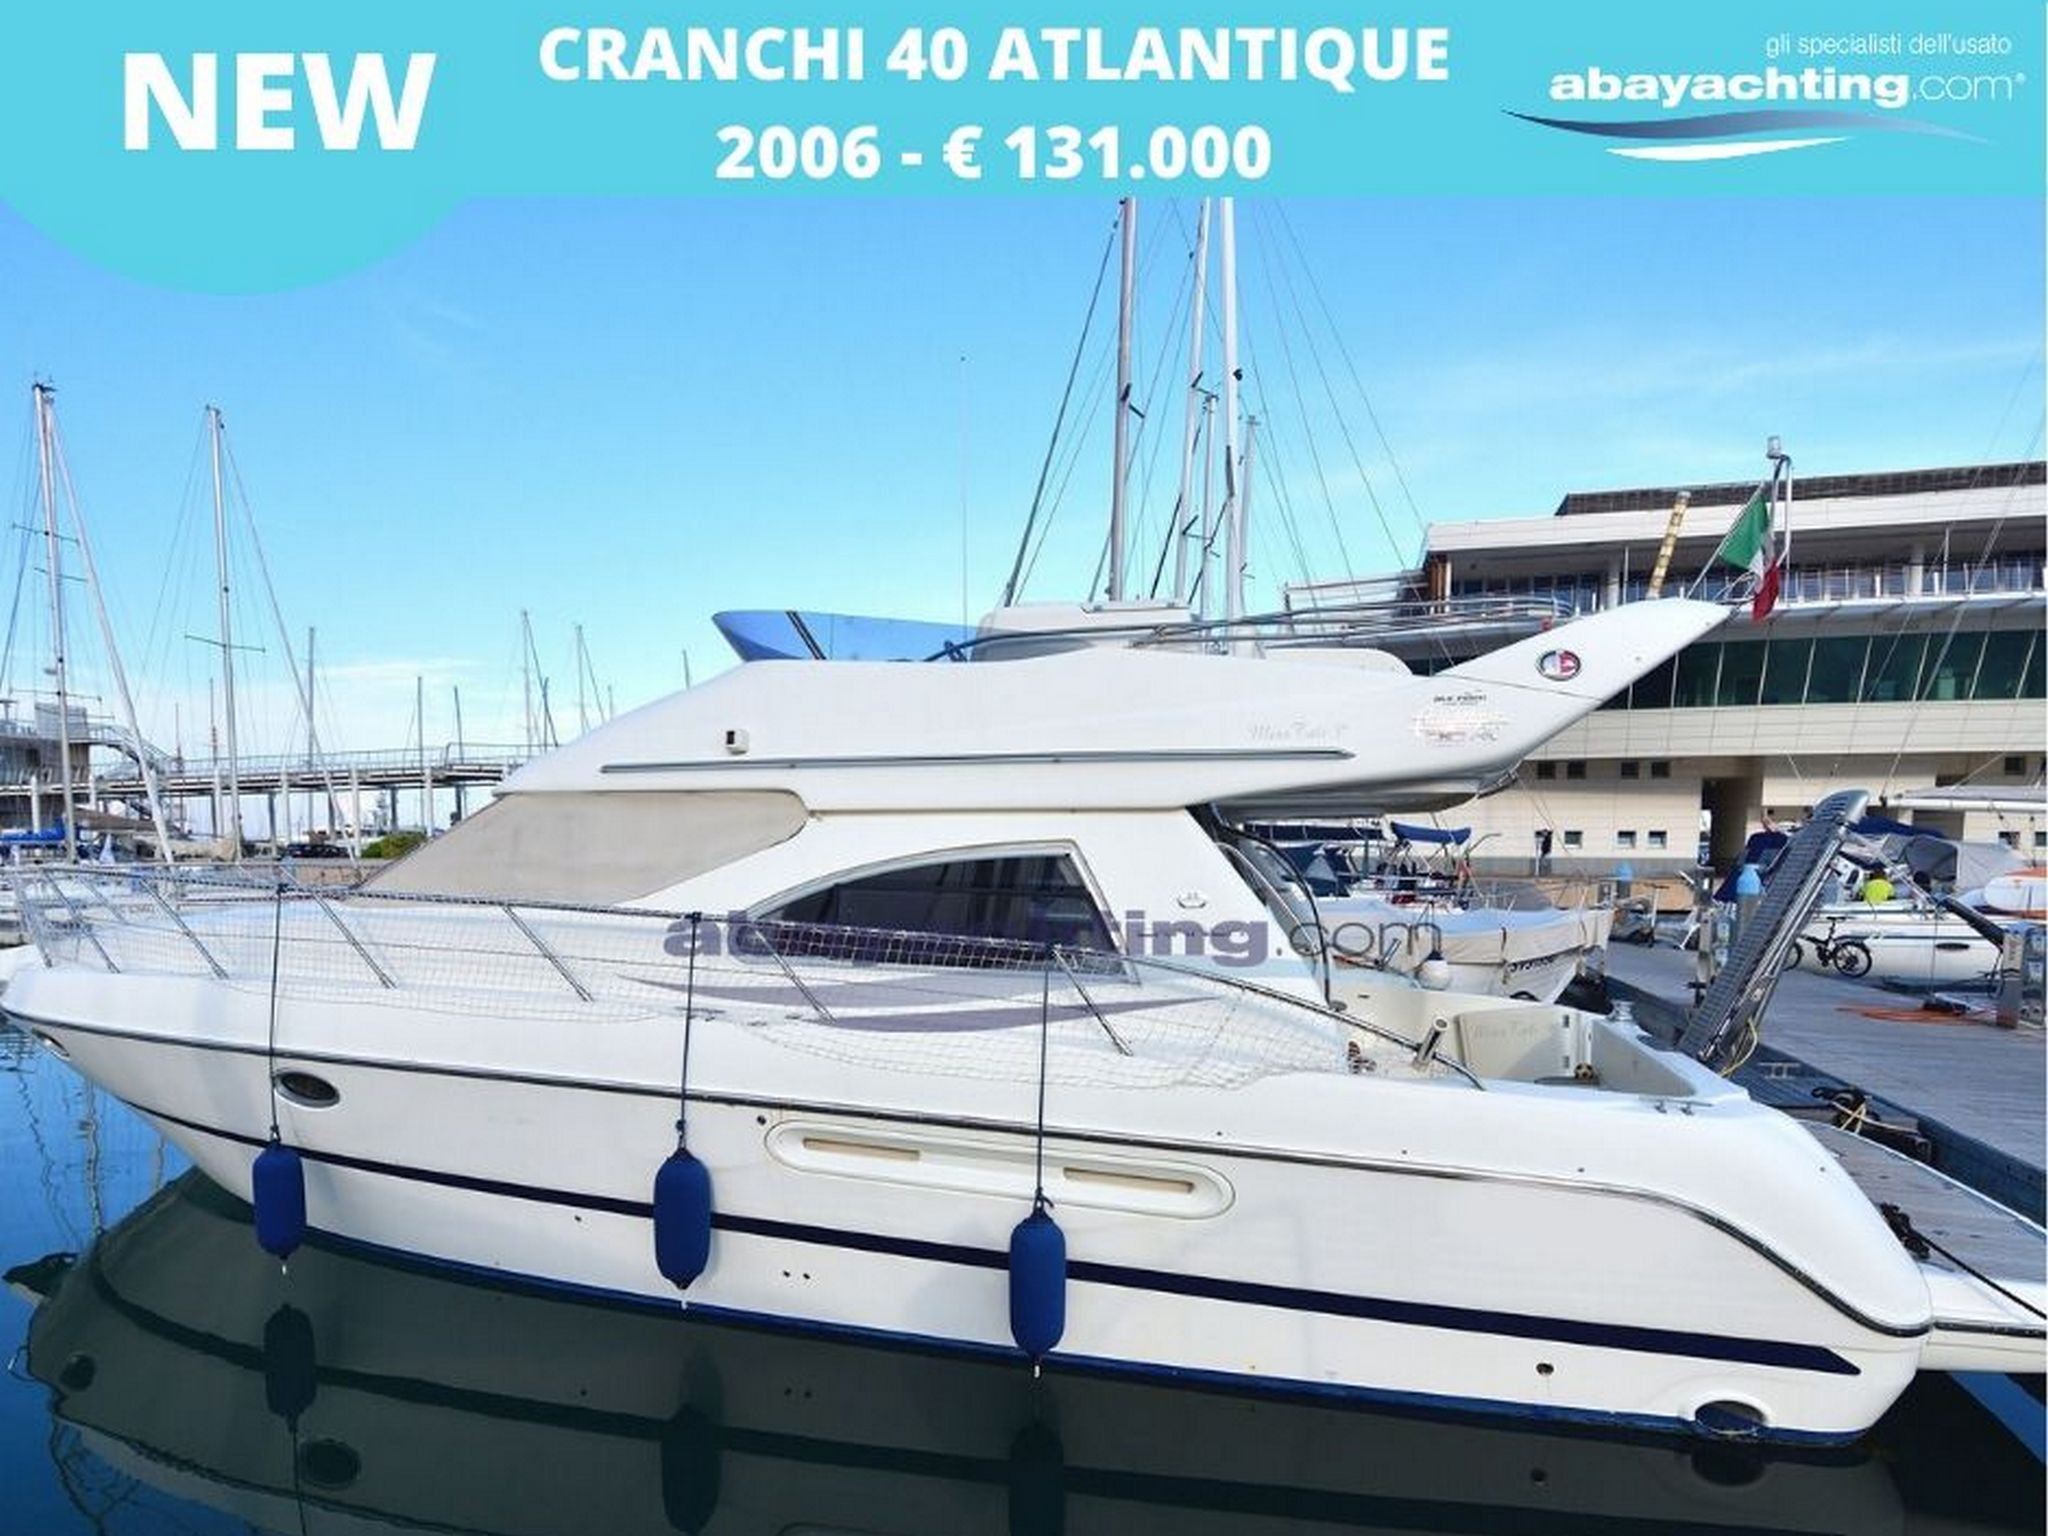 New arrival Canchi 40 Atlantique